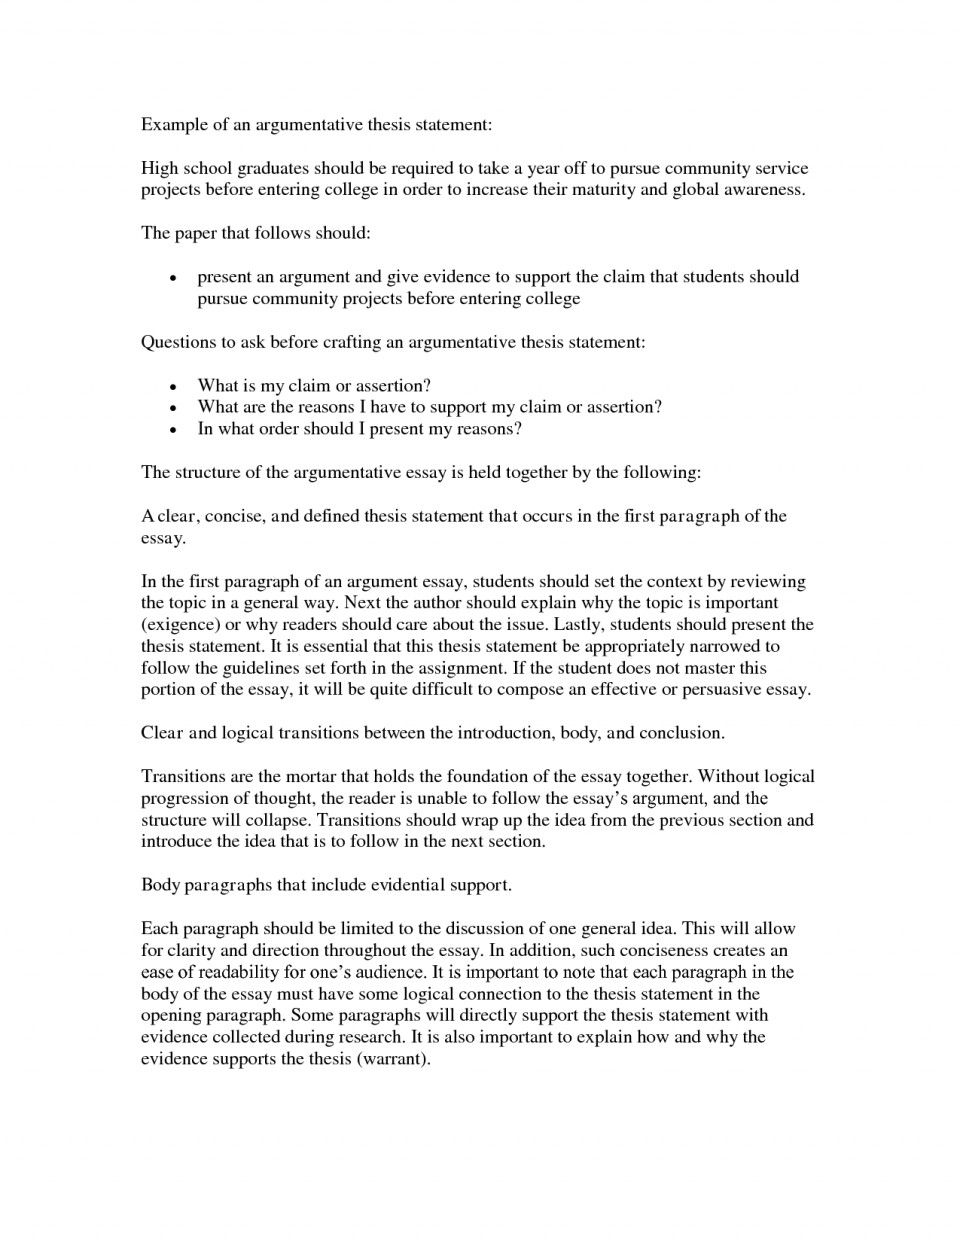 012 Argumentative Thesis Statement For Research Paper Amazing How To Write A An 960